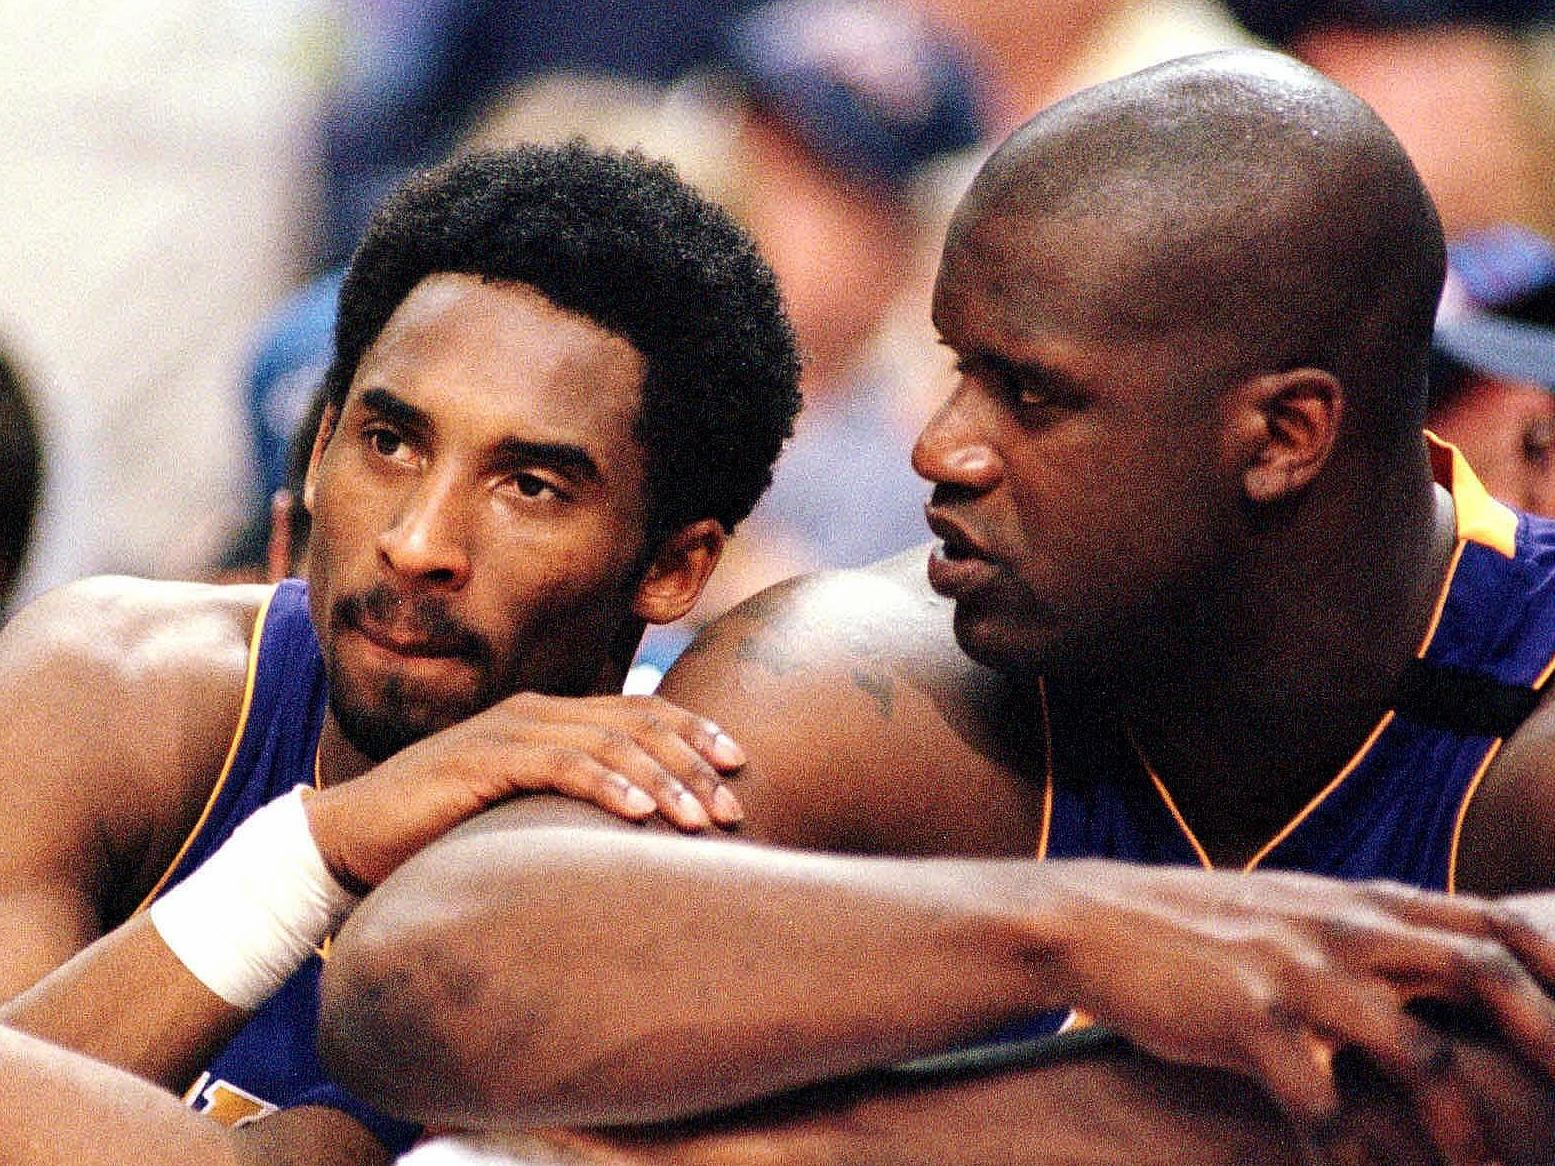 Kobe Bryant death: Shaquille O'Neal admits his 'spirit just left his body' in emotional tribute to former Los Angeles Lakers teammate